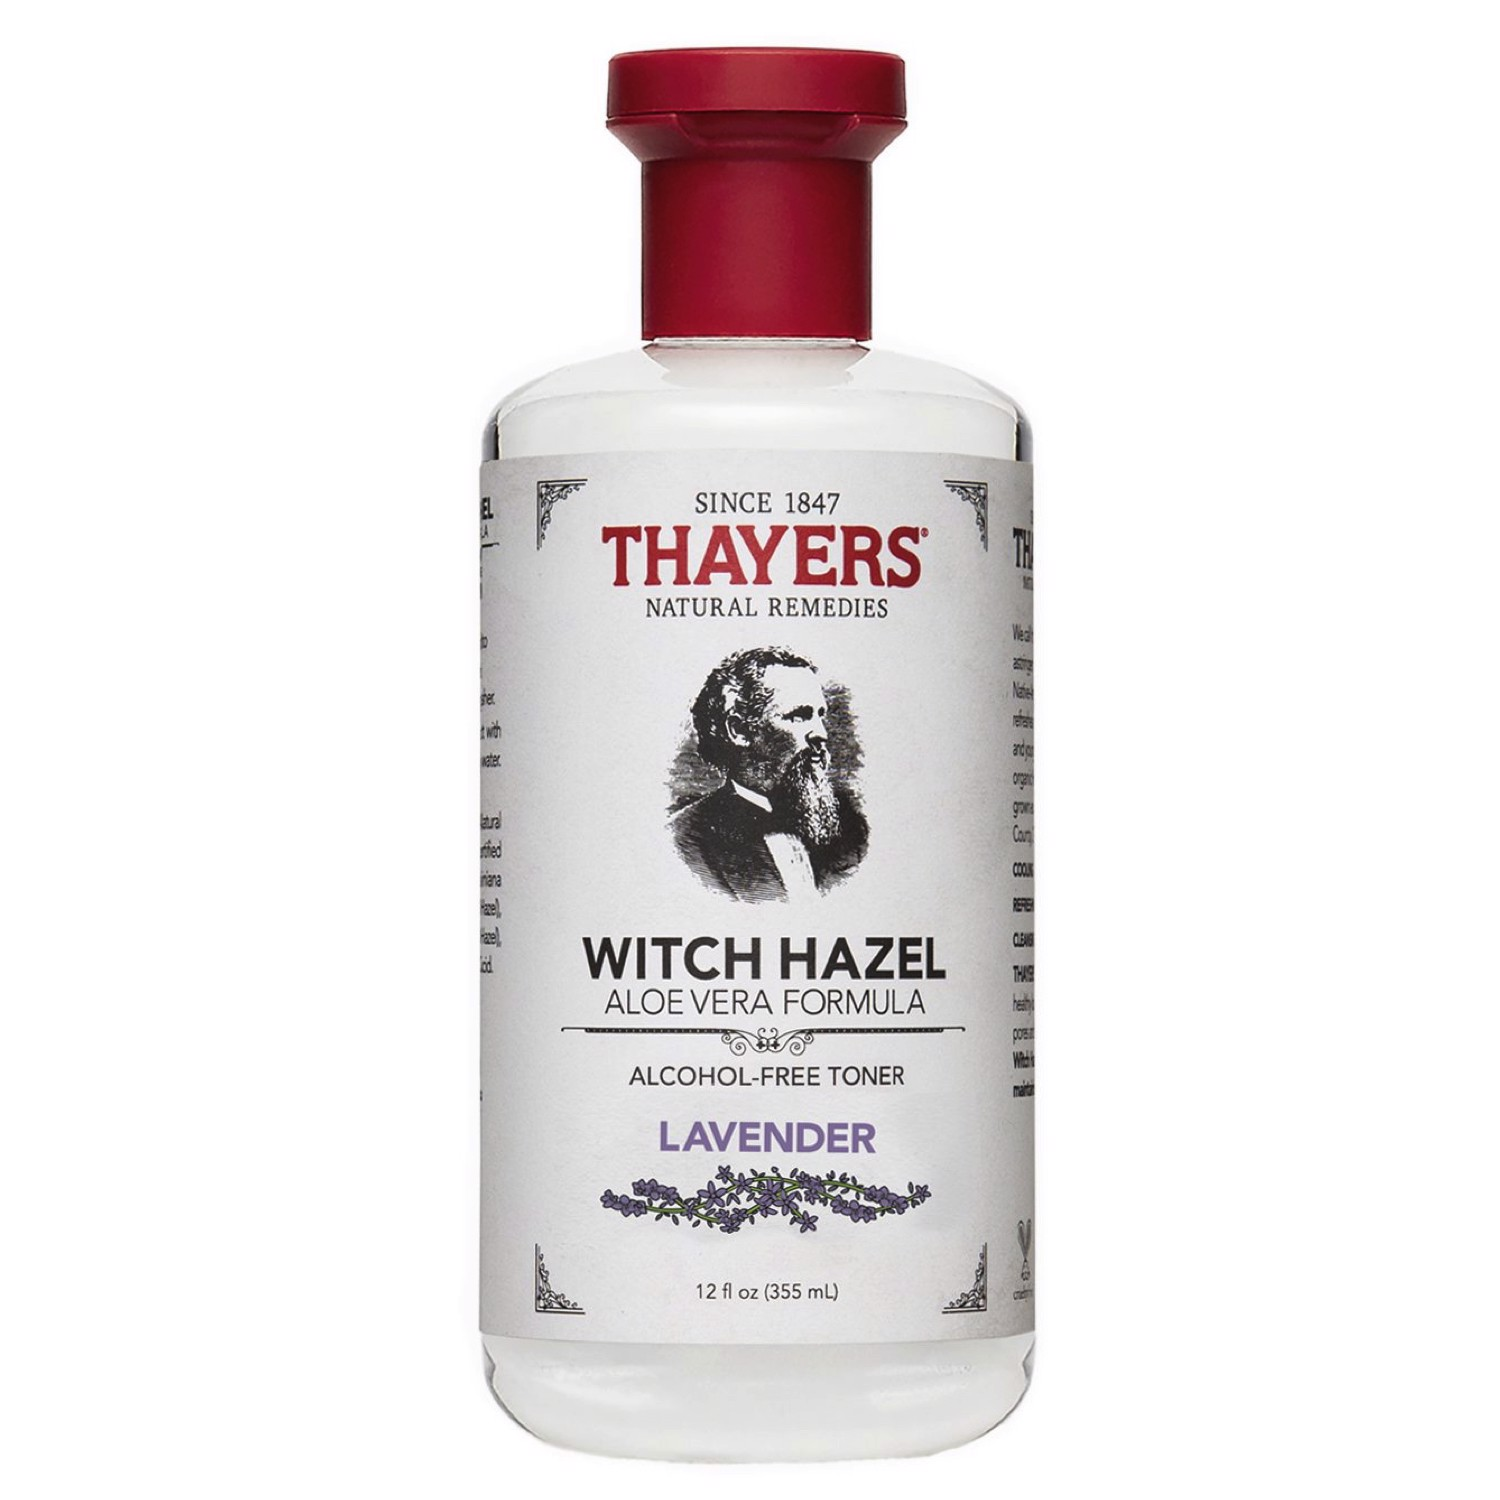 Thayers Alcohol Free Toner Lavender 355ml